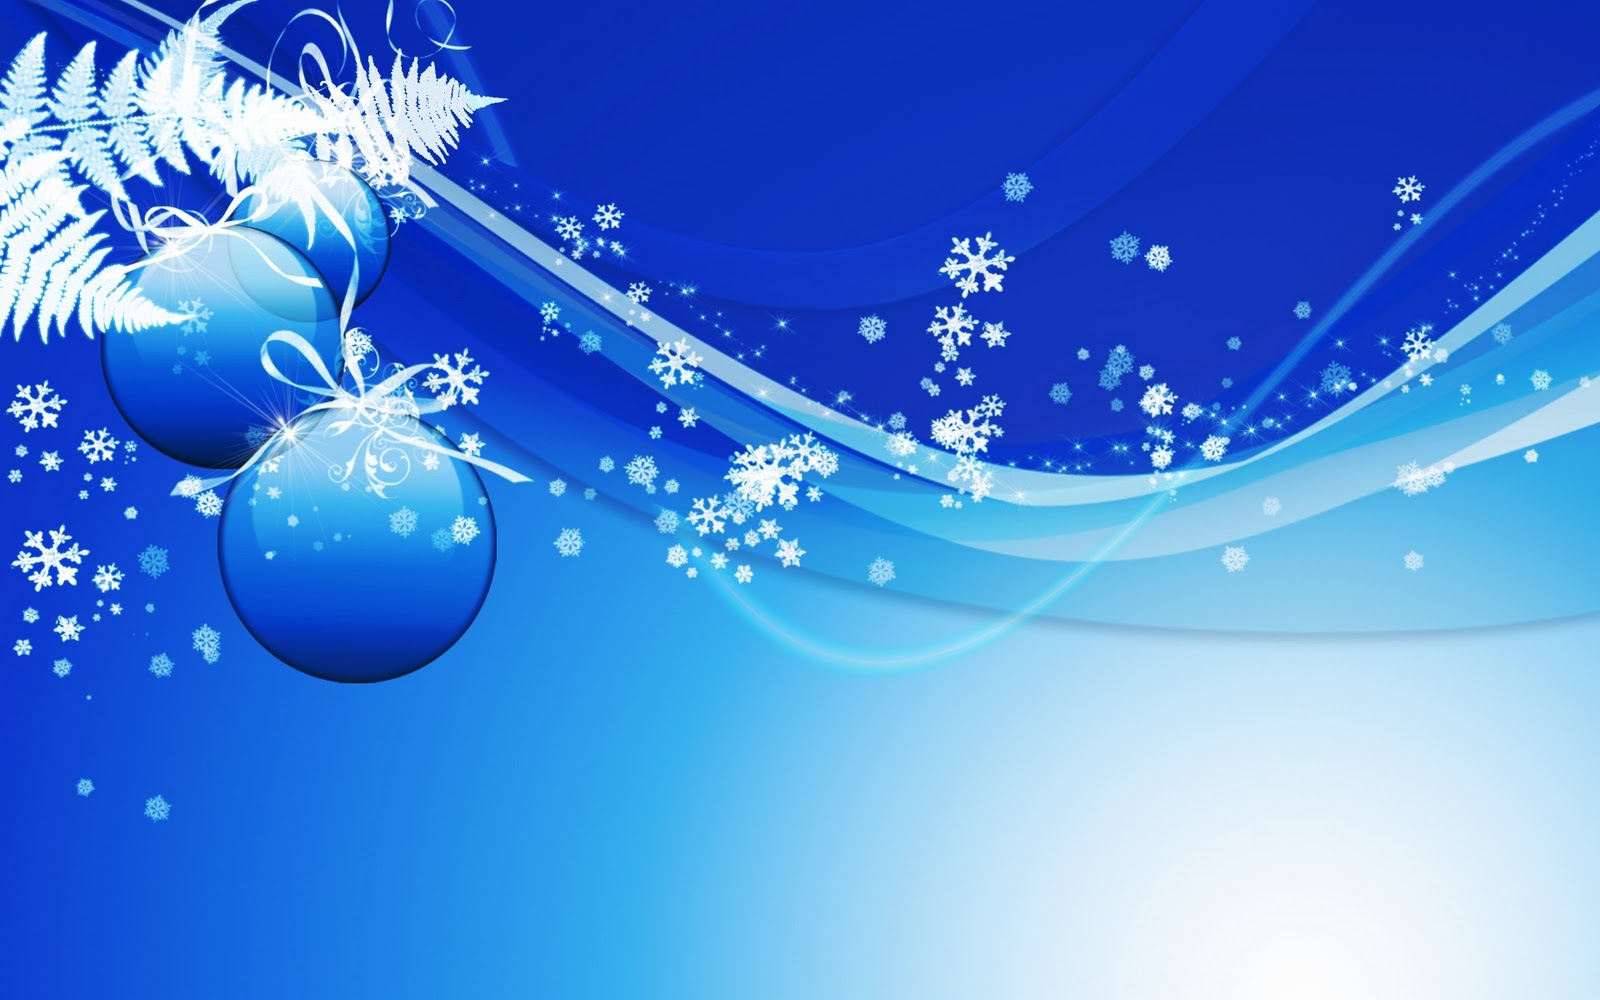 http://1.bp.blogspot.com/-9sQVSx_x7mc/TurHVolsW0I/AAAAAAAACi0/OgXMCi8mjqo/s1600/Blue_Christmas_Magic.jpg